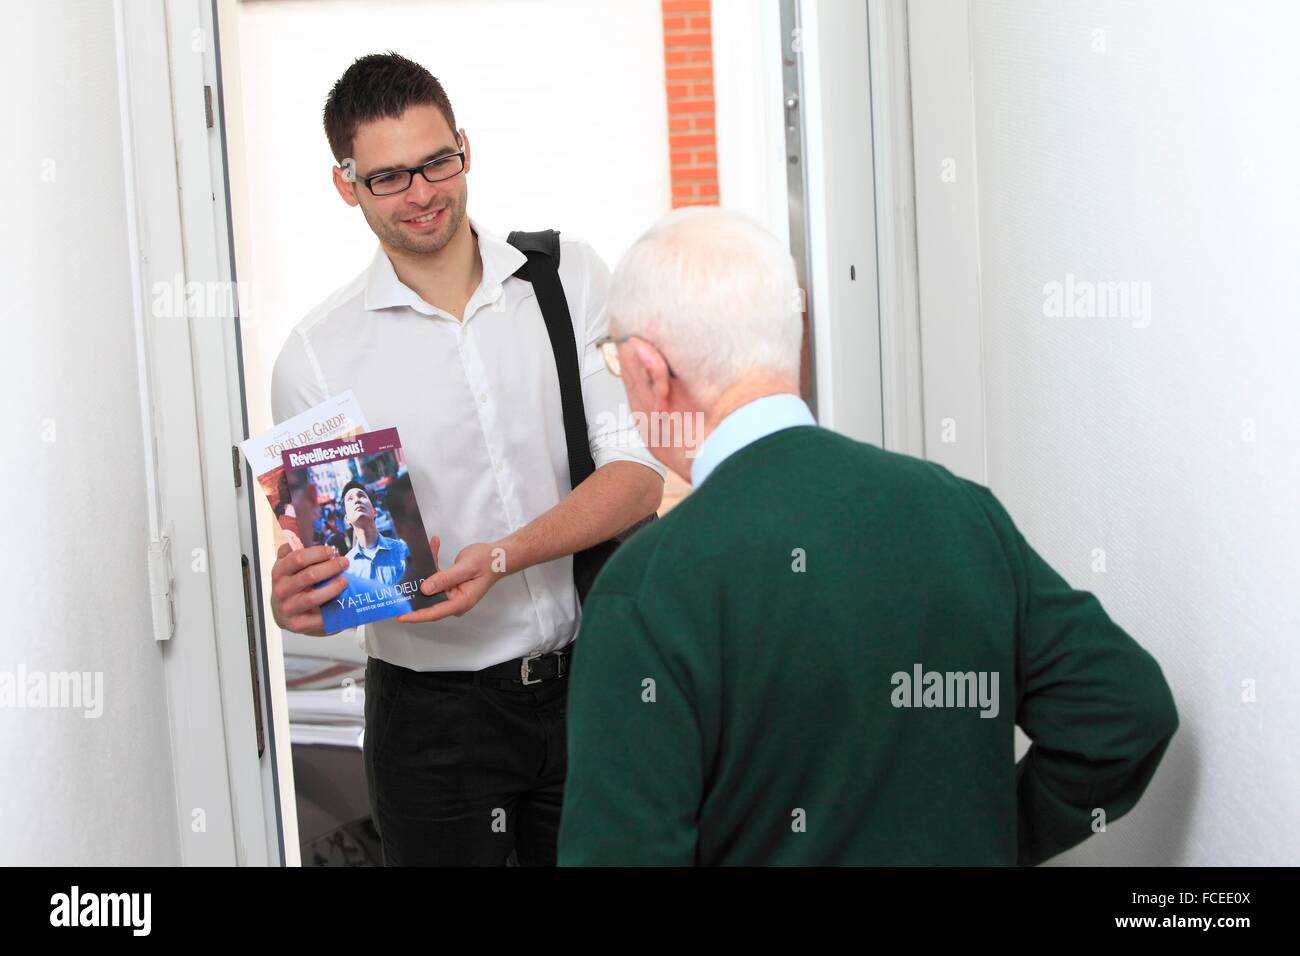 France canvassing at the main door - Stock Image  sc 1 st  Alamy & Canvassing Stock Photos u0026 Canvassing Stock Images - Alamy